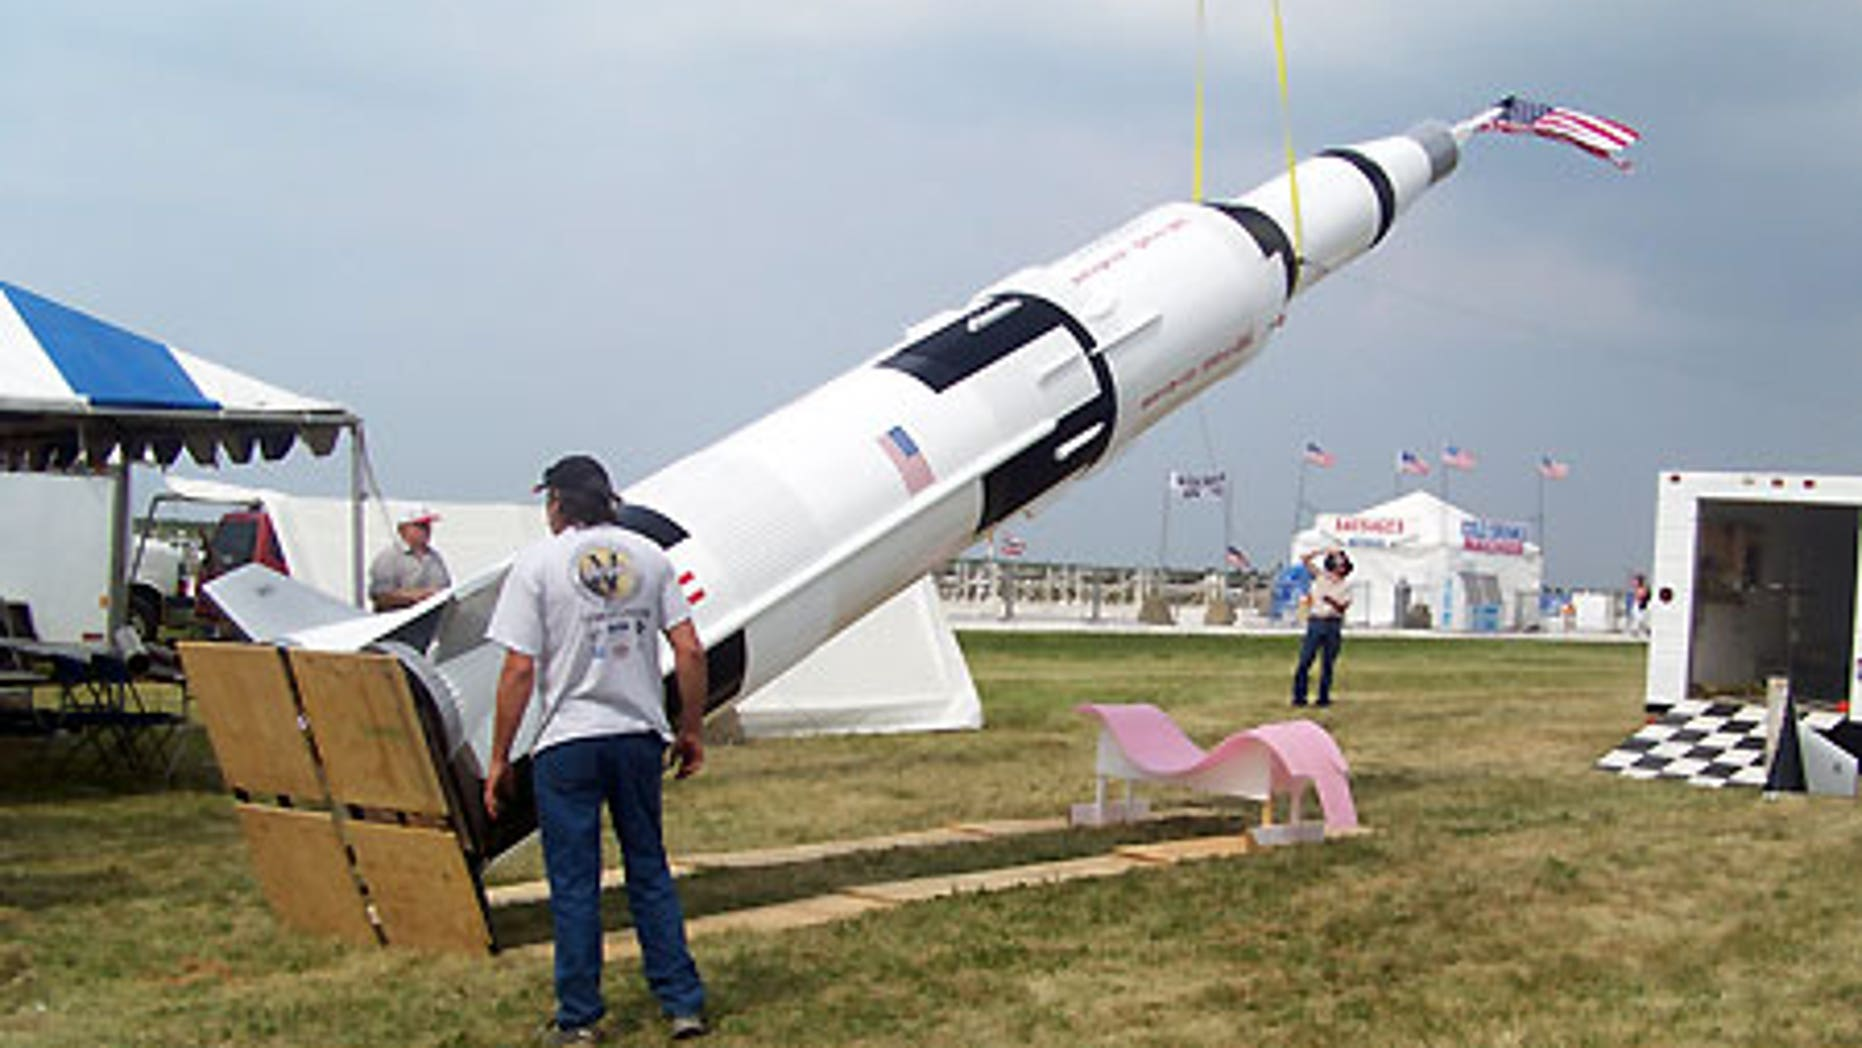 Aug. 20, 2008: Lifting the rocket into a standing position at the Cleveland Air Show.